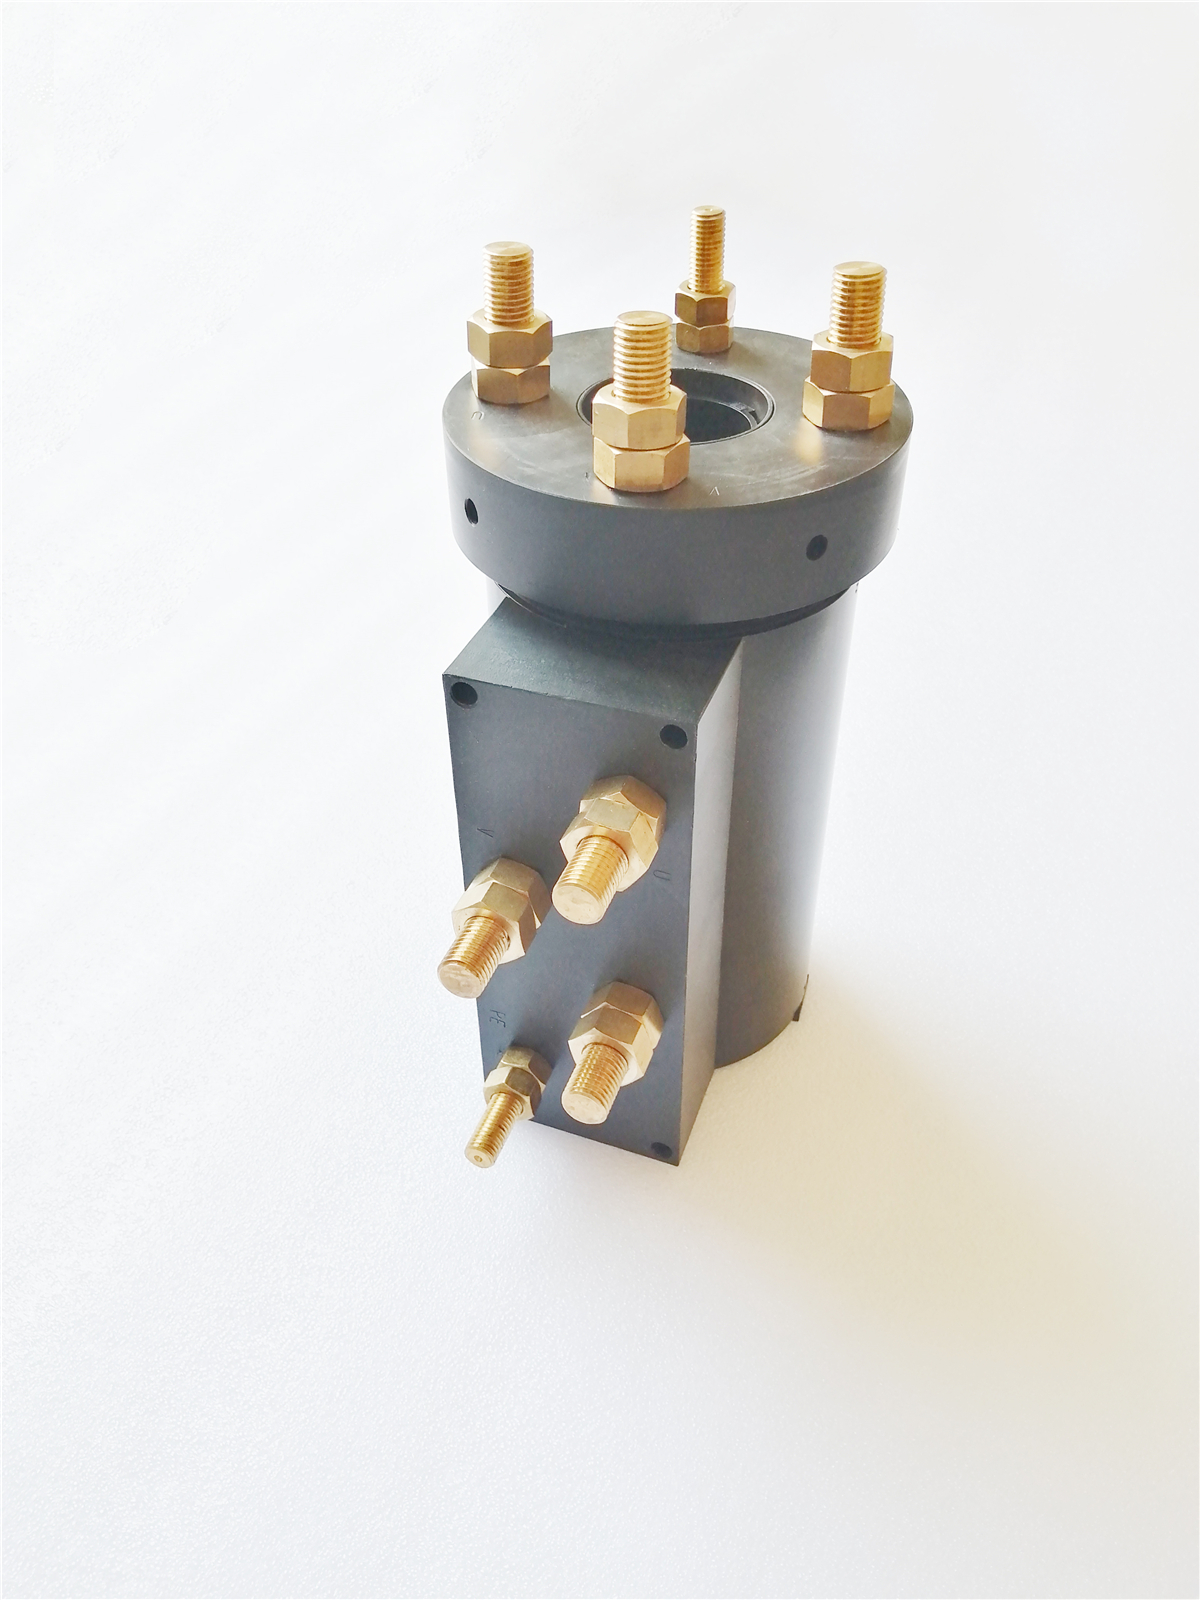 Electric slip ring DHK050-4-300A(5.35kg)